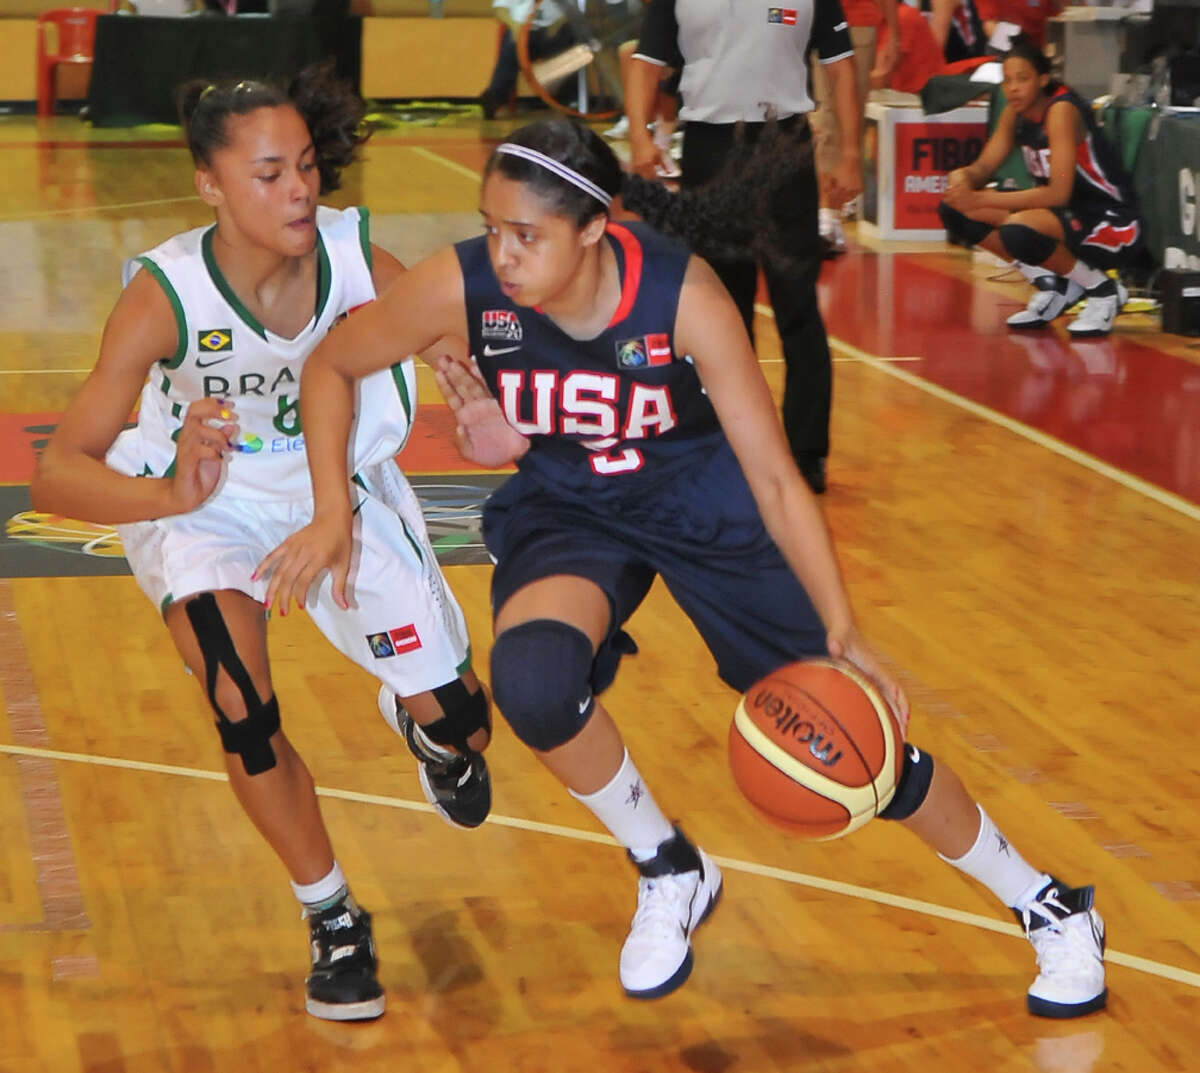 Recee' Caldwell, a 5-foot-8 point guard shown against Brazil, was the youngest on Team USA at the tournament this month in Merida, Mexico.